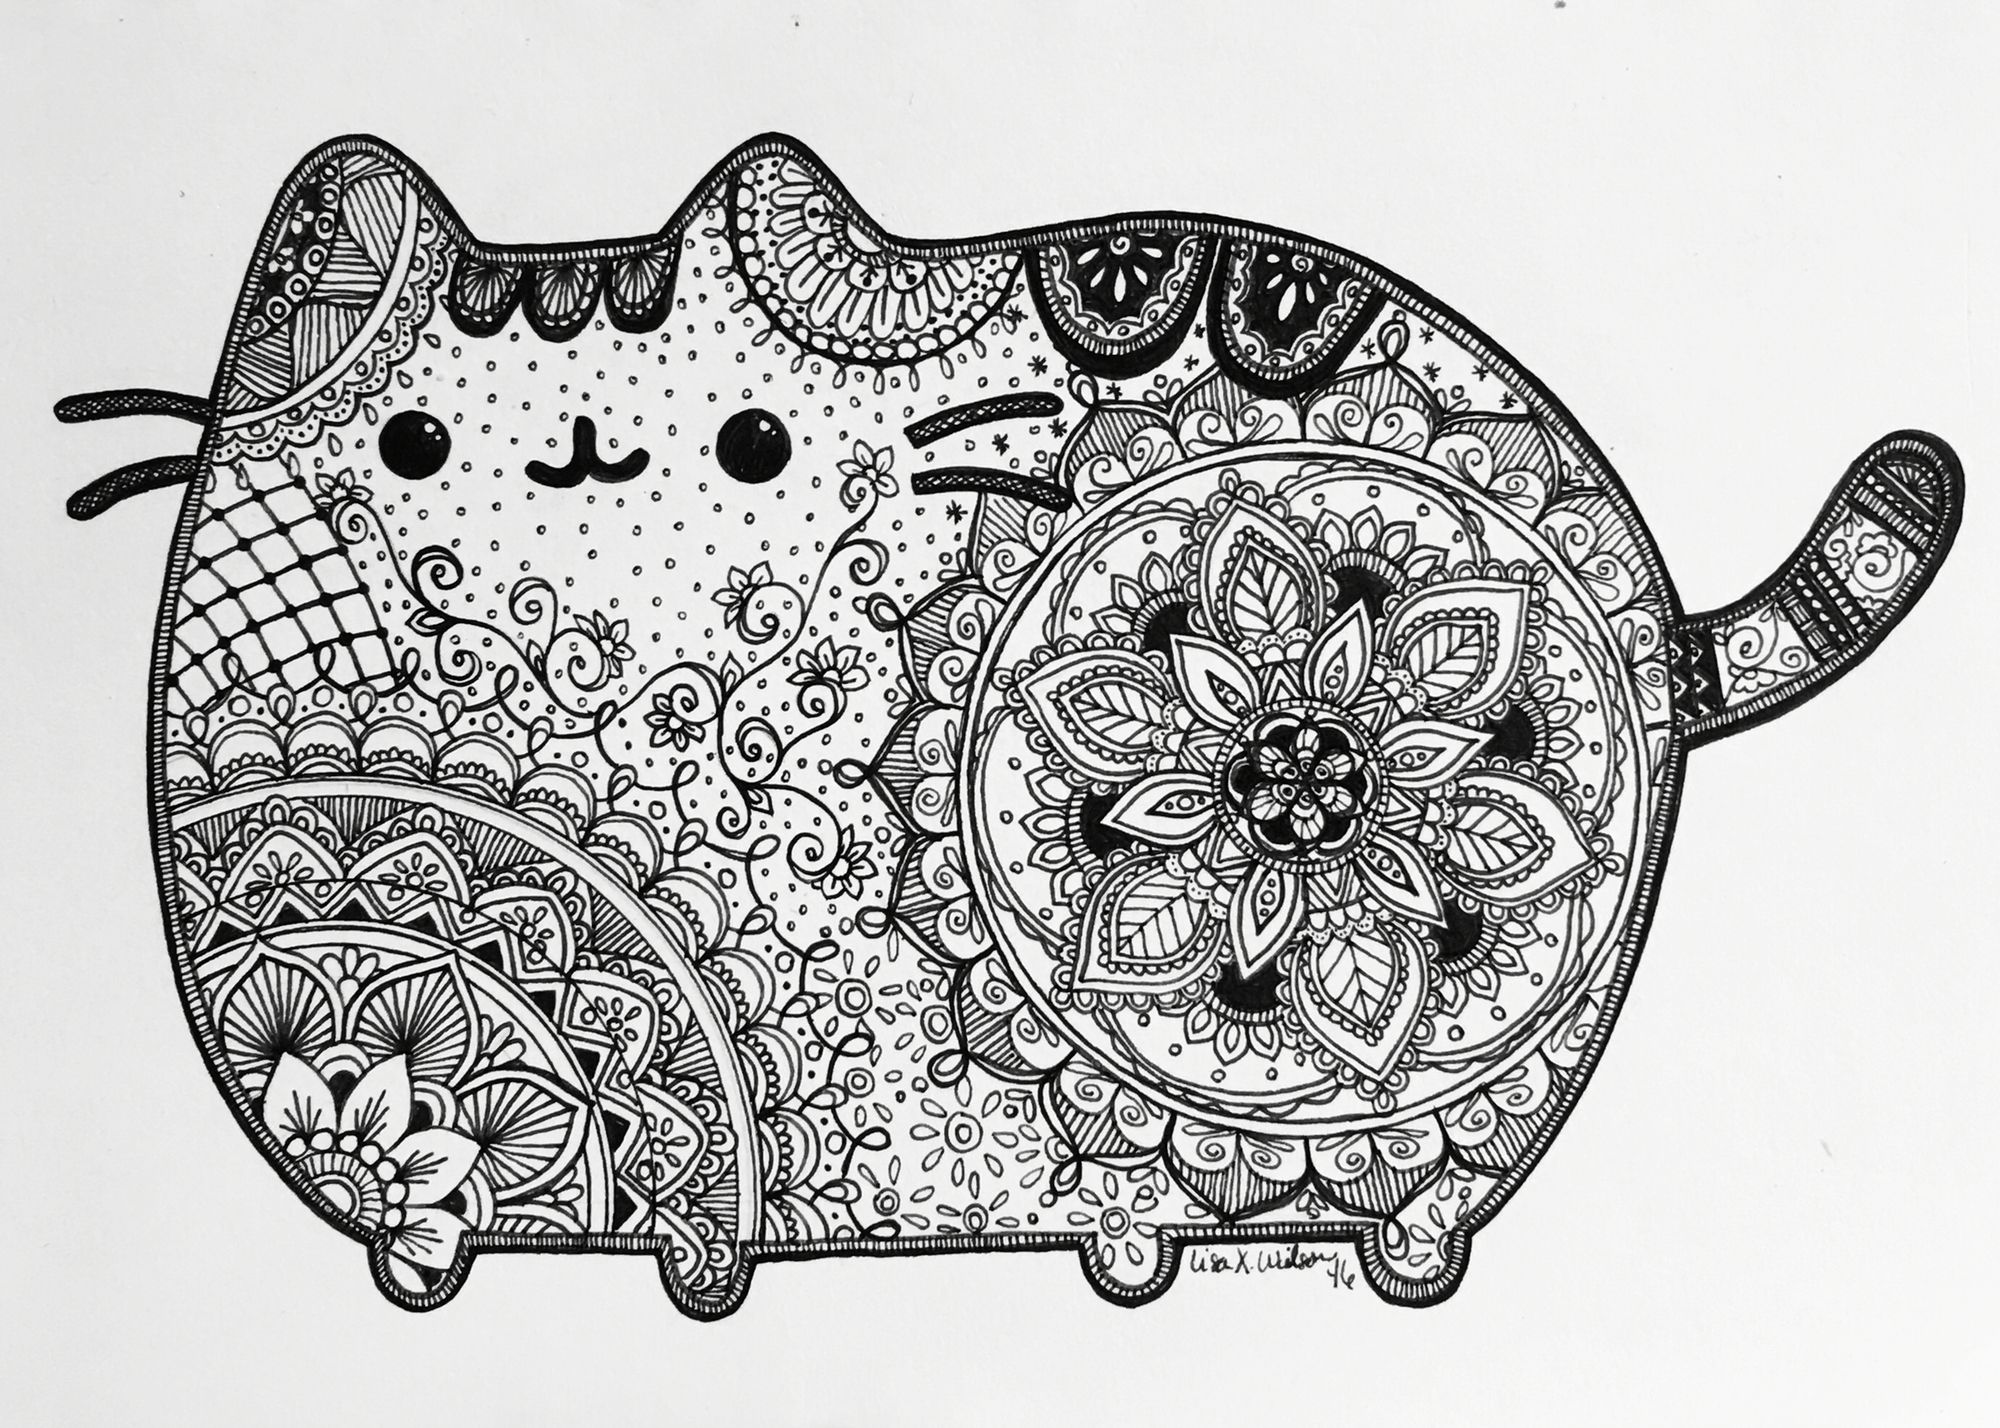 Pusheen Inspired art | Mandalas and zentangle art | Pinterest ...